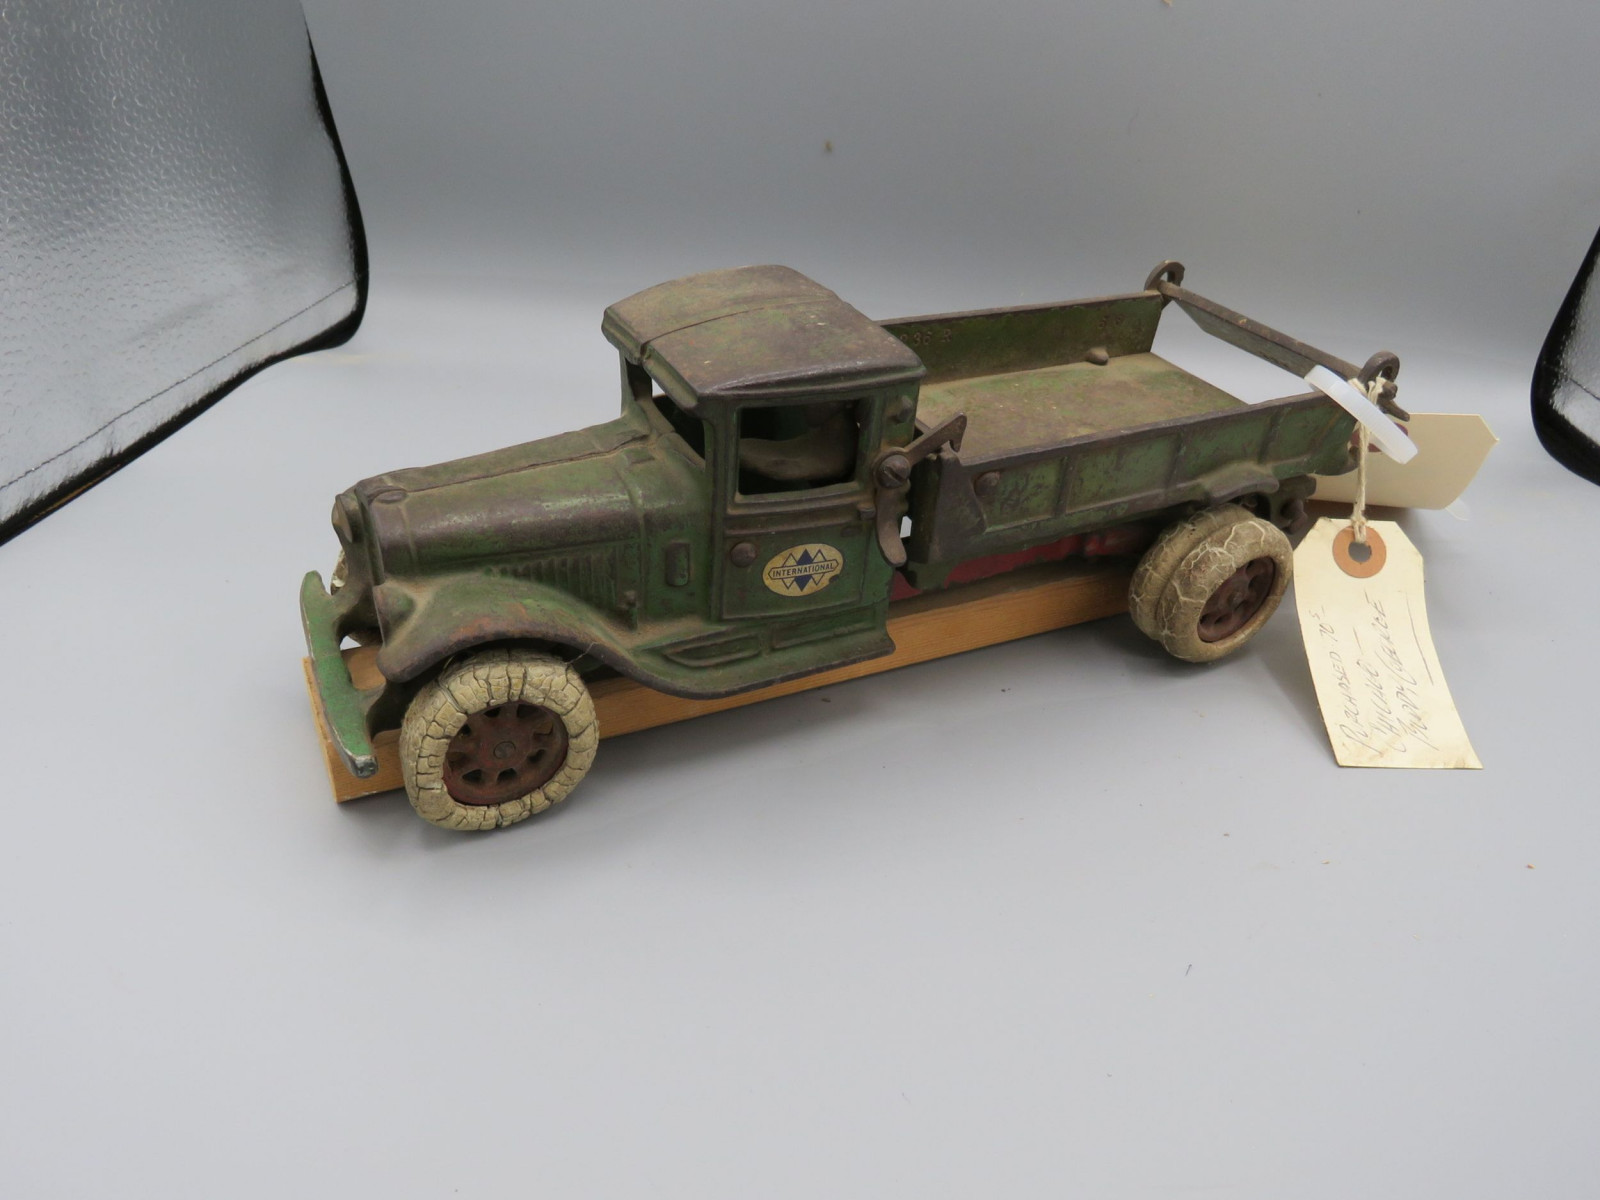 Arcade IH Truck @1931 Cast Iron Truck Approx. 10 inches - Image 2